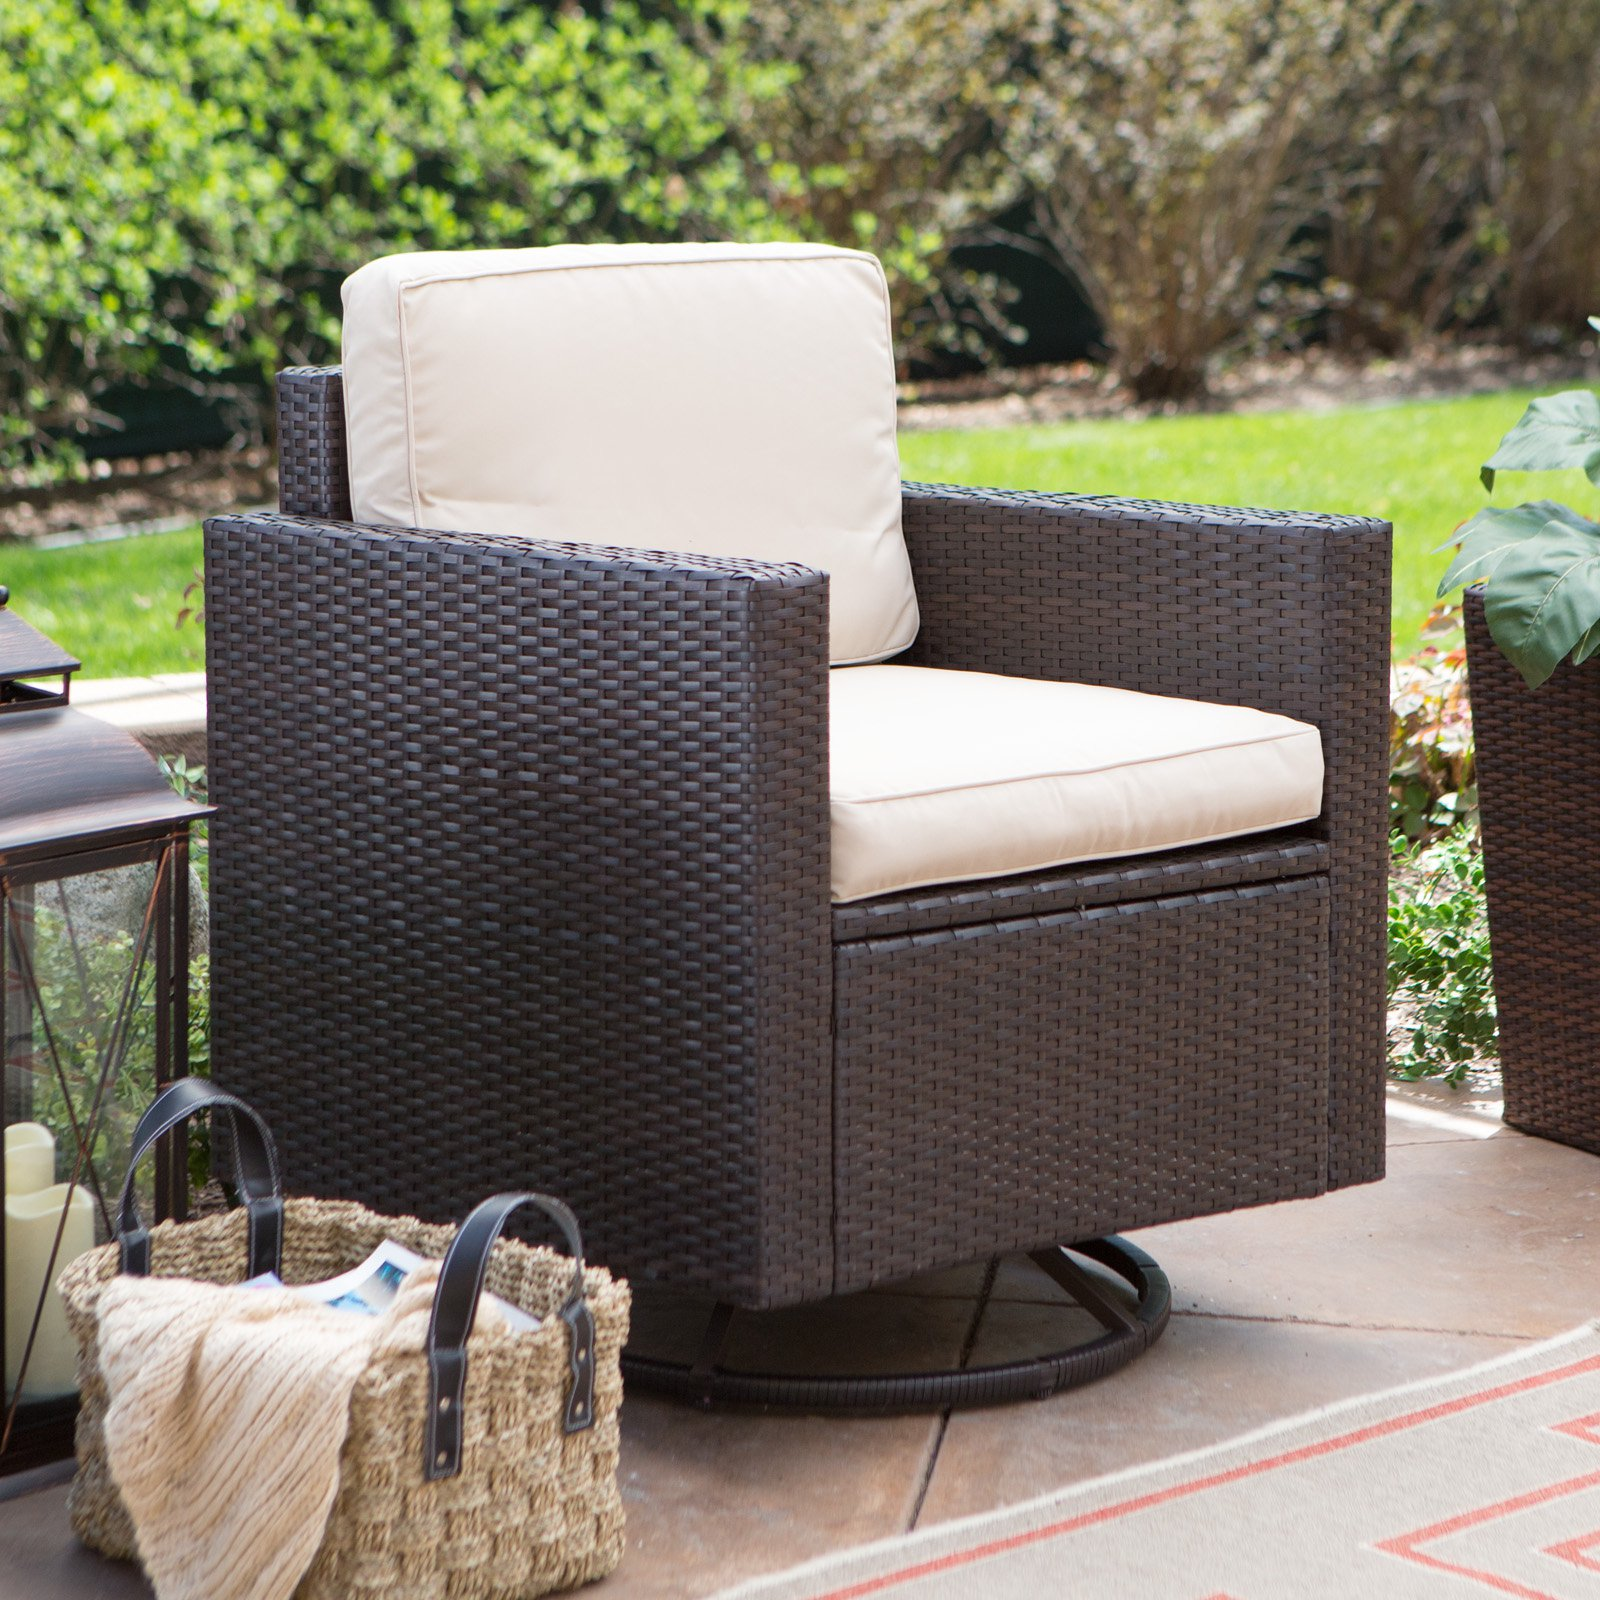 Coral Coast Berea Wicker Outdoor Wicker Swivel Chair with Cushions by Modern Marketing Concepts Inc